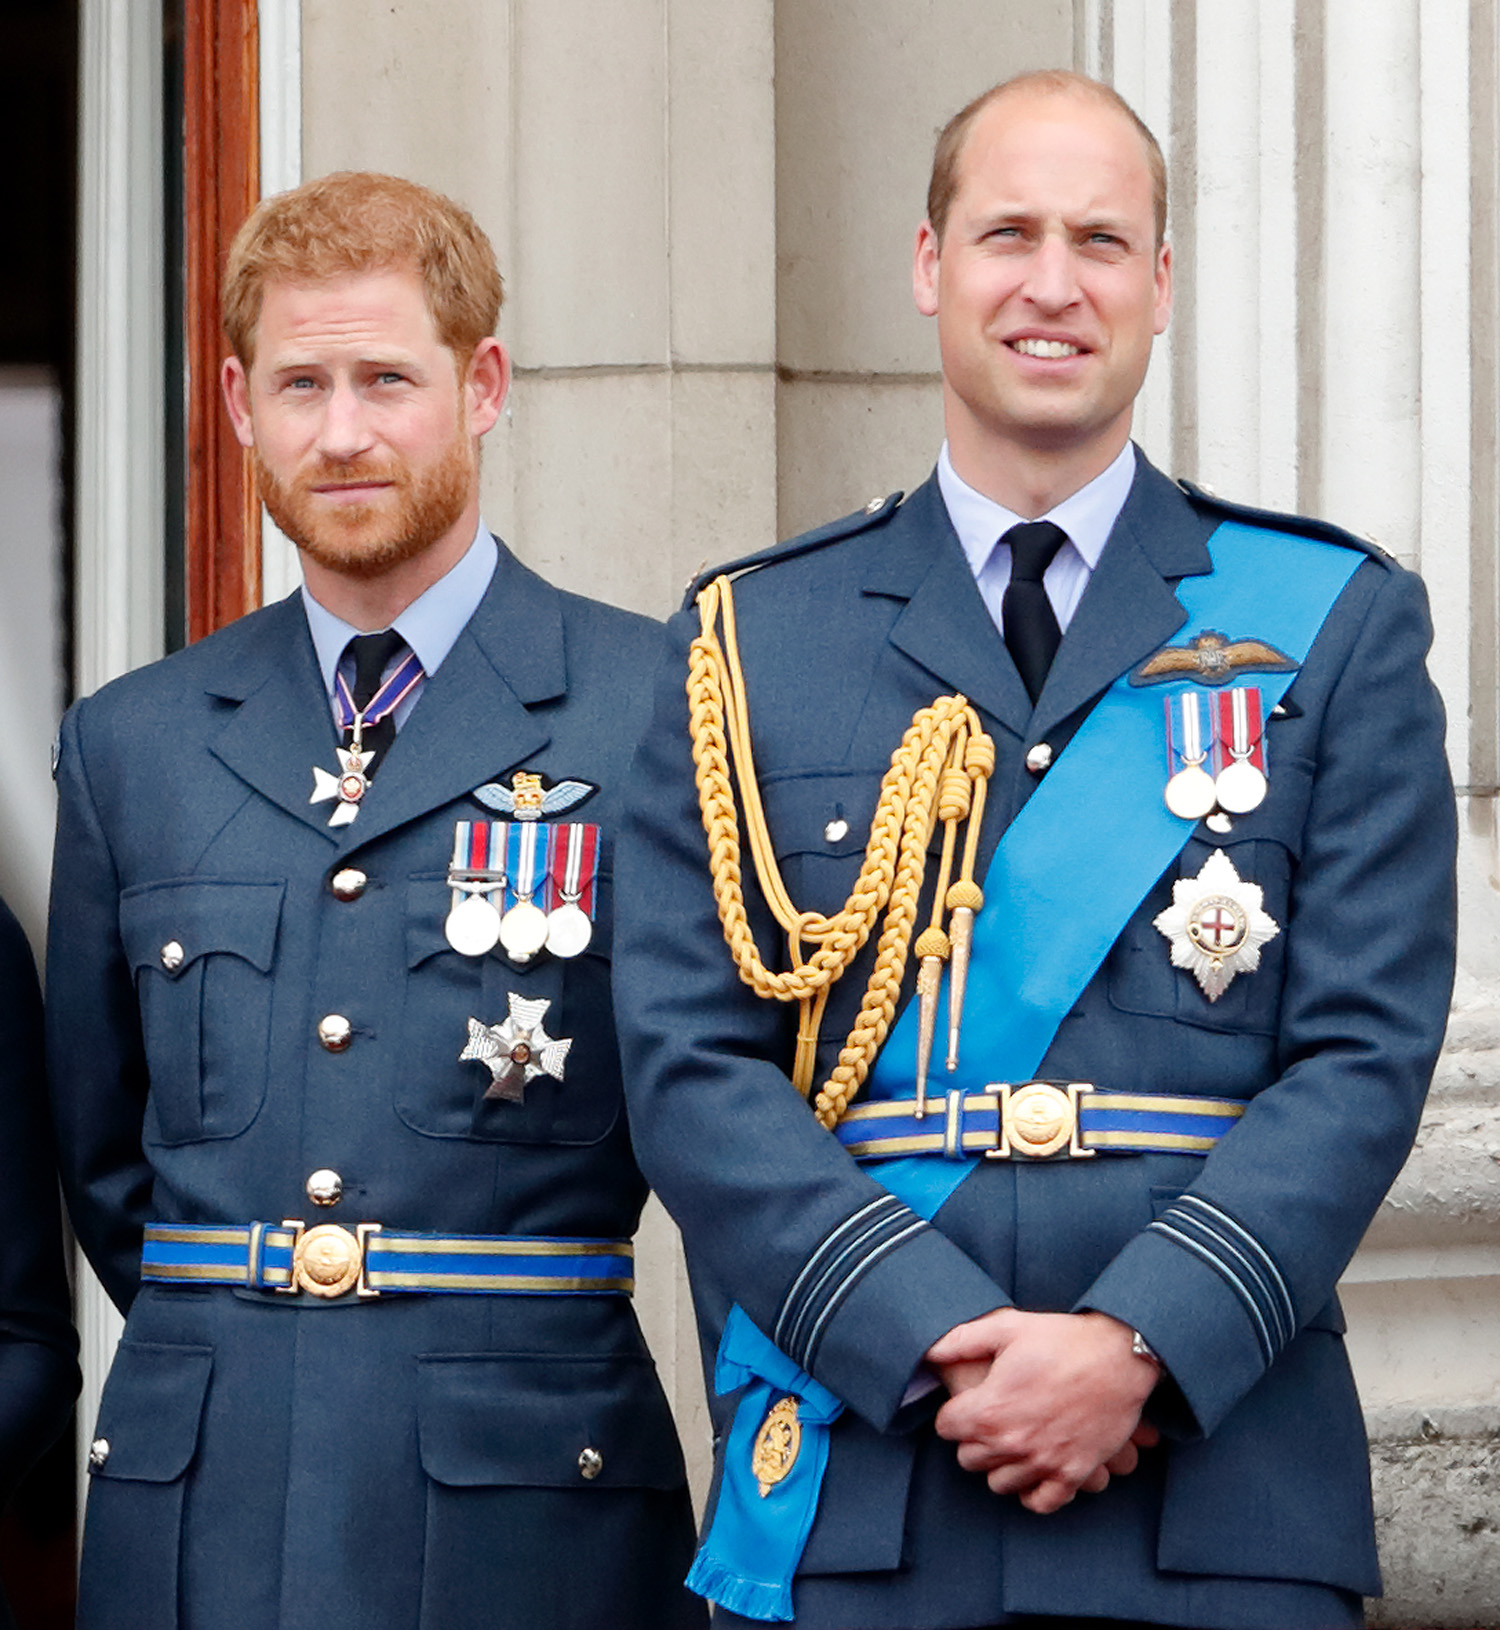 Prince Harry, Duke of Sussex and Prince William, Duke of Cambridge